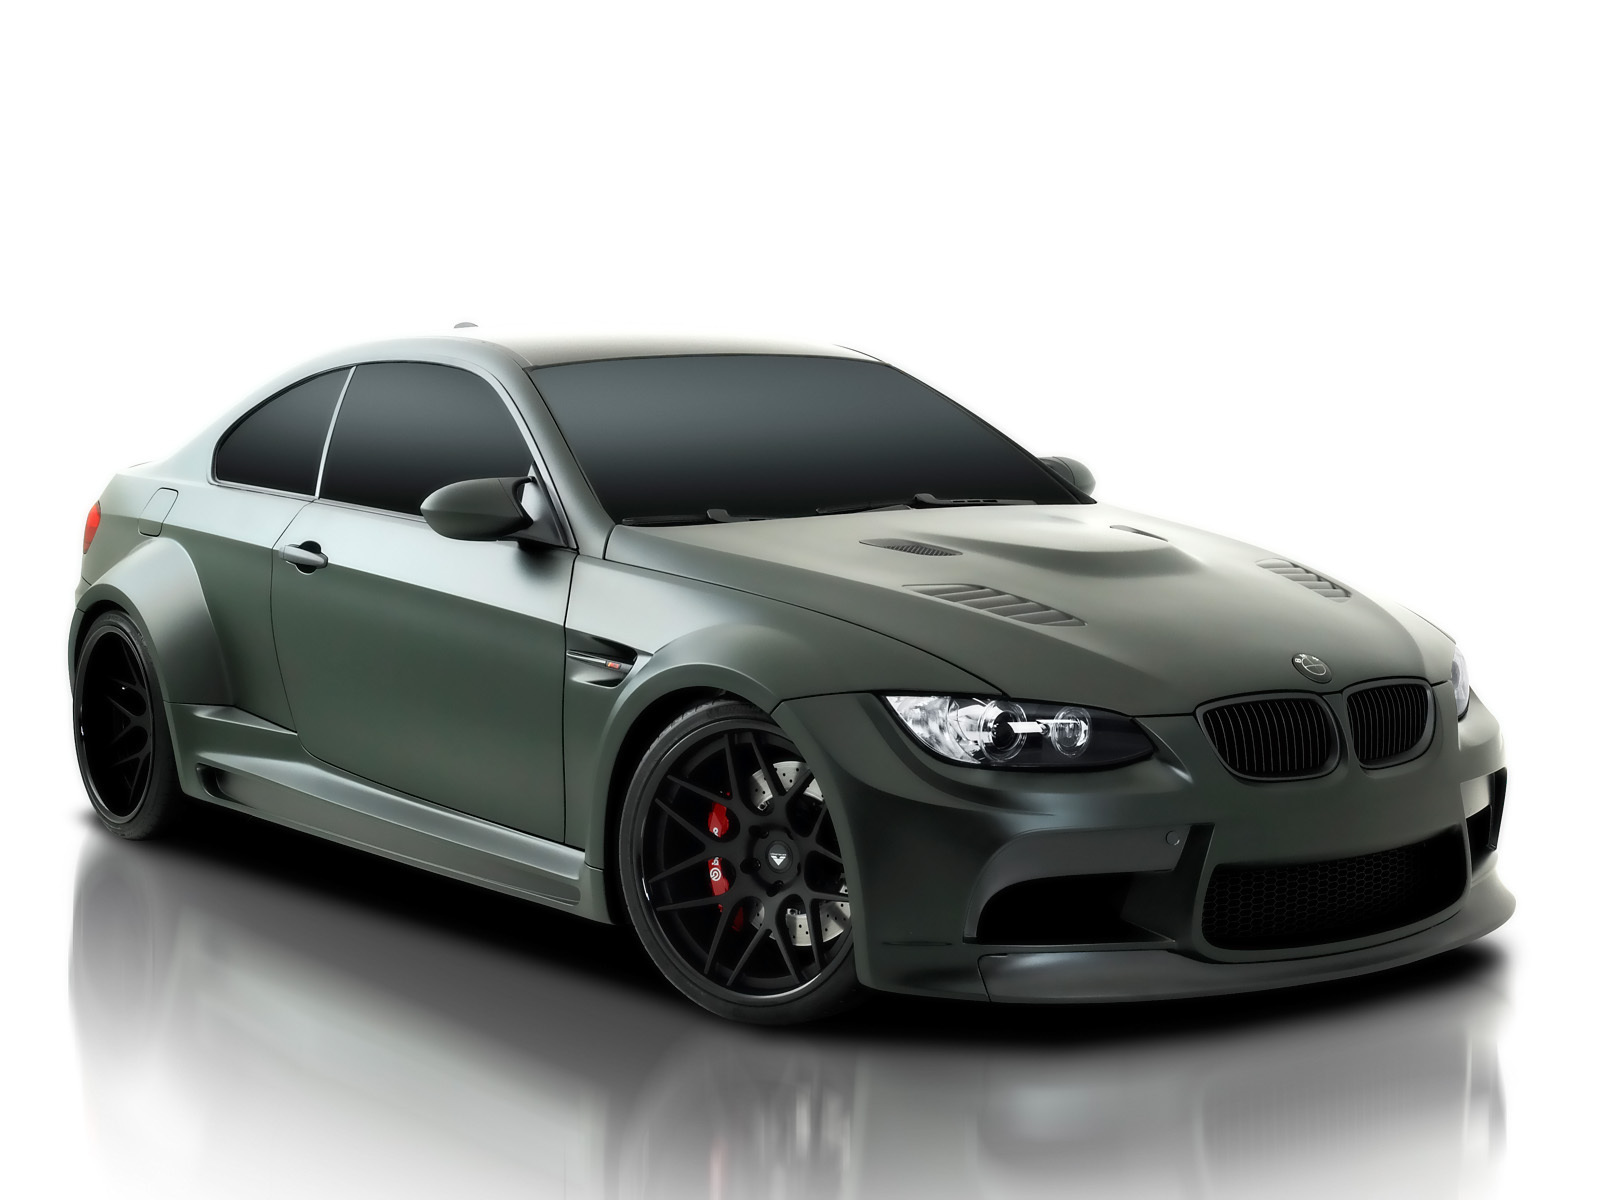 bmw gtrs m3 coupe by vorsteiner bmw wallpaper 15521659. Black Bedroom Furniture Sets. Home Design Ideas